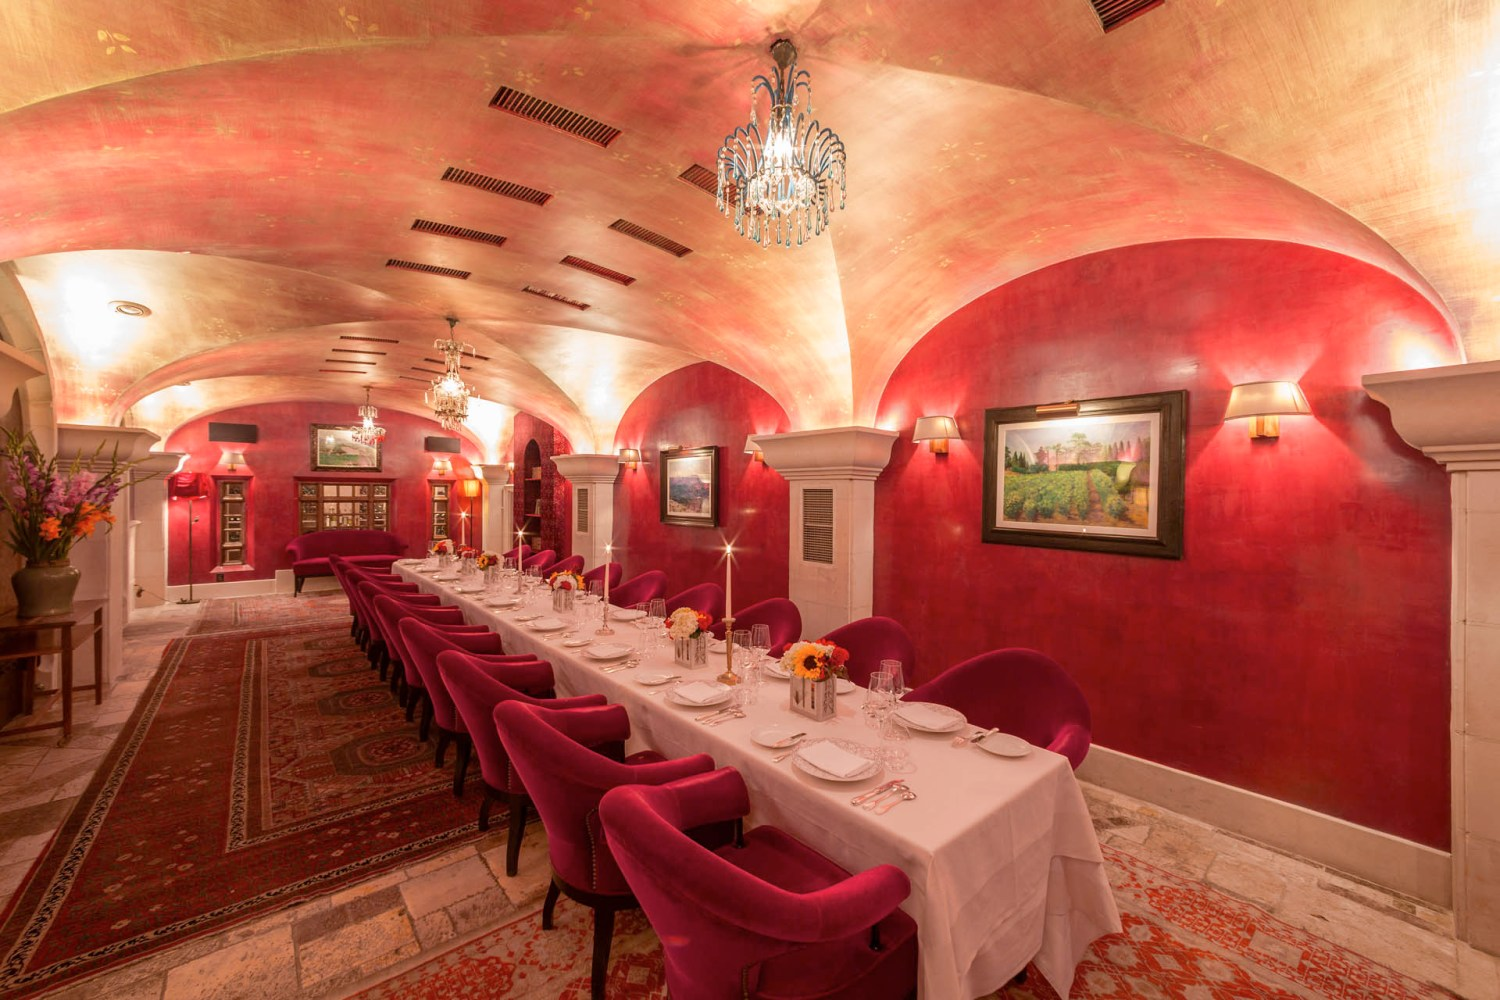 Bouley Red Room (History - Bouley at 163 Duane in the Mohawk Building)